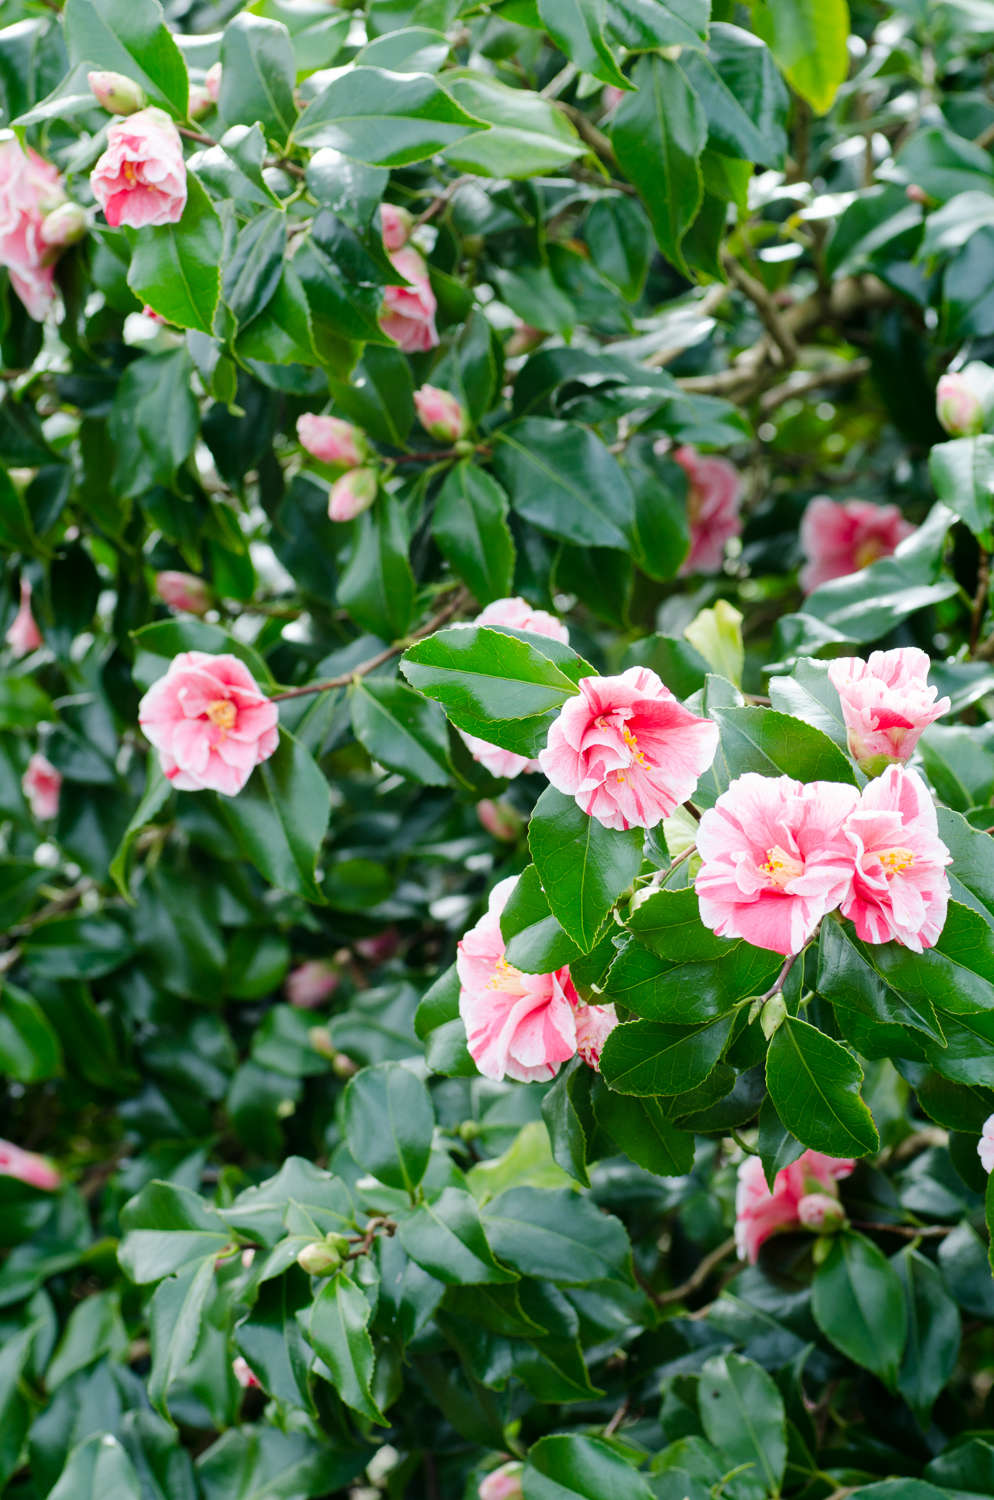 Camellias in control; irresistible or irritating? Photograph by Heather Edwards.